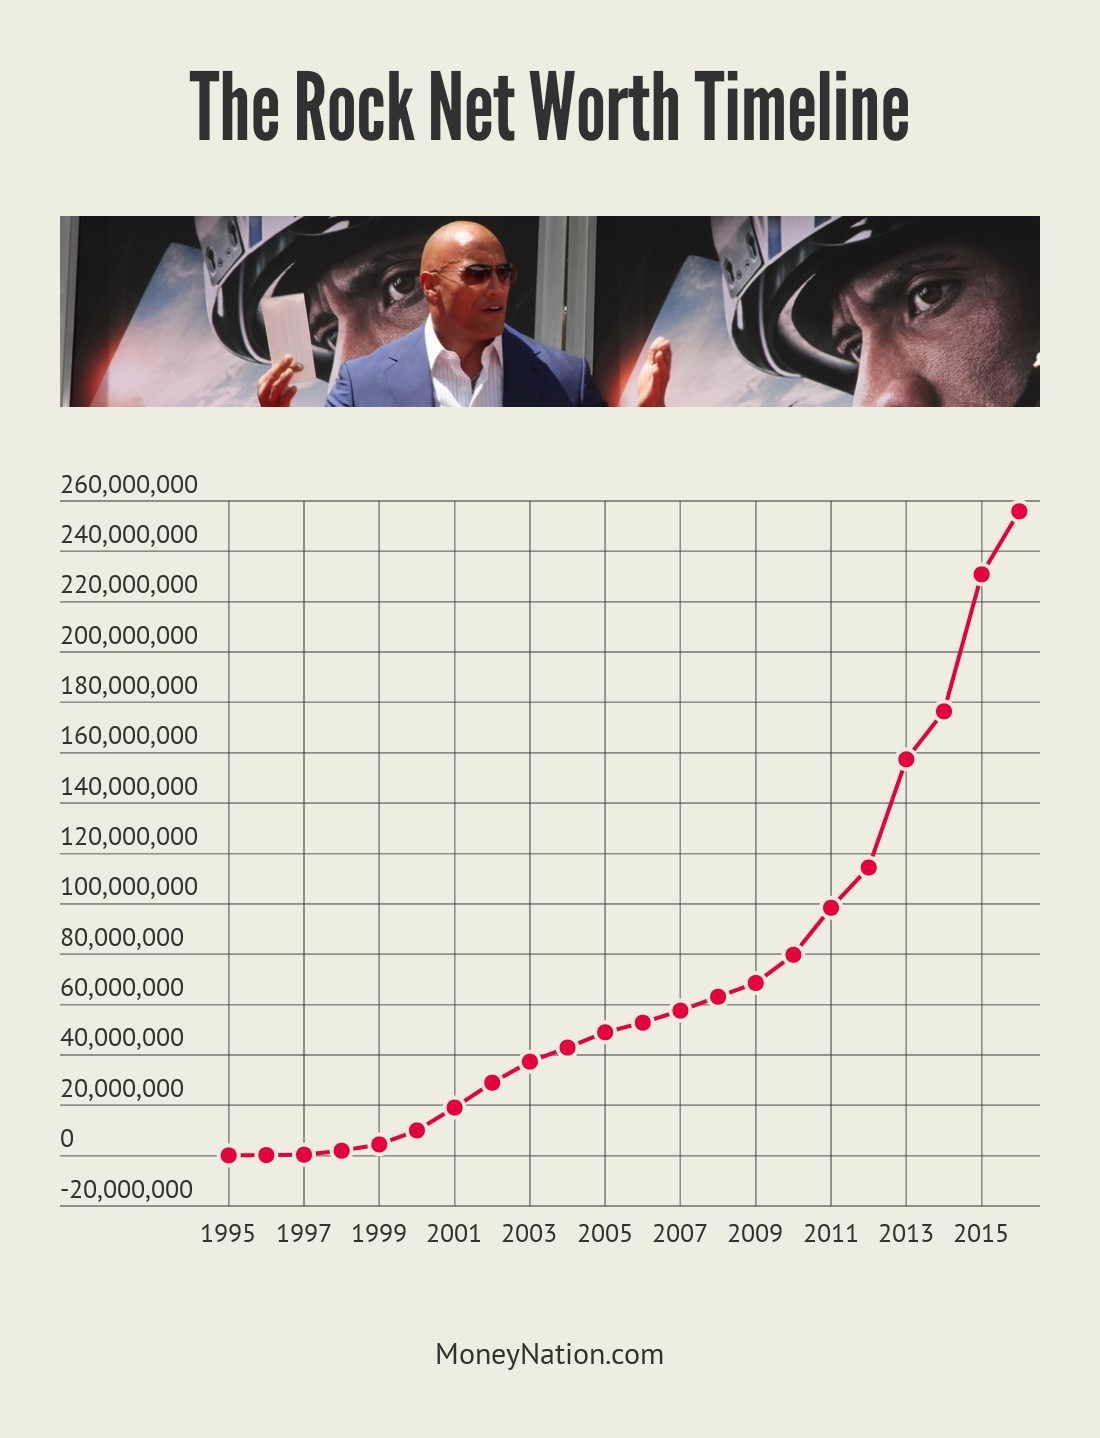 The Rock Net Worth Timeline